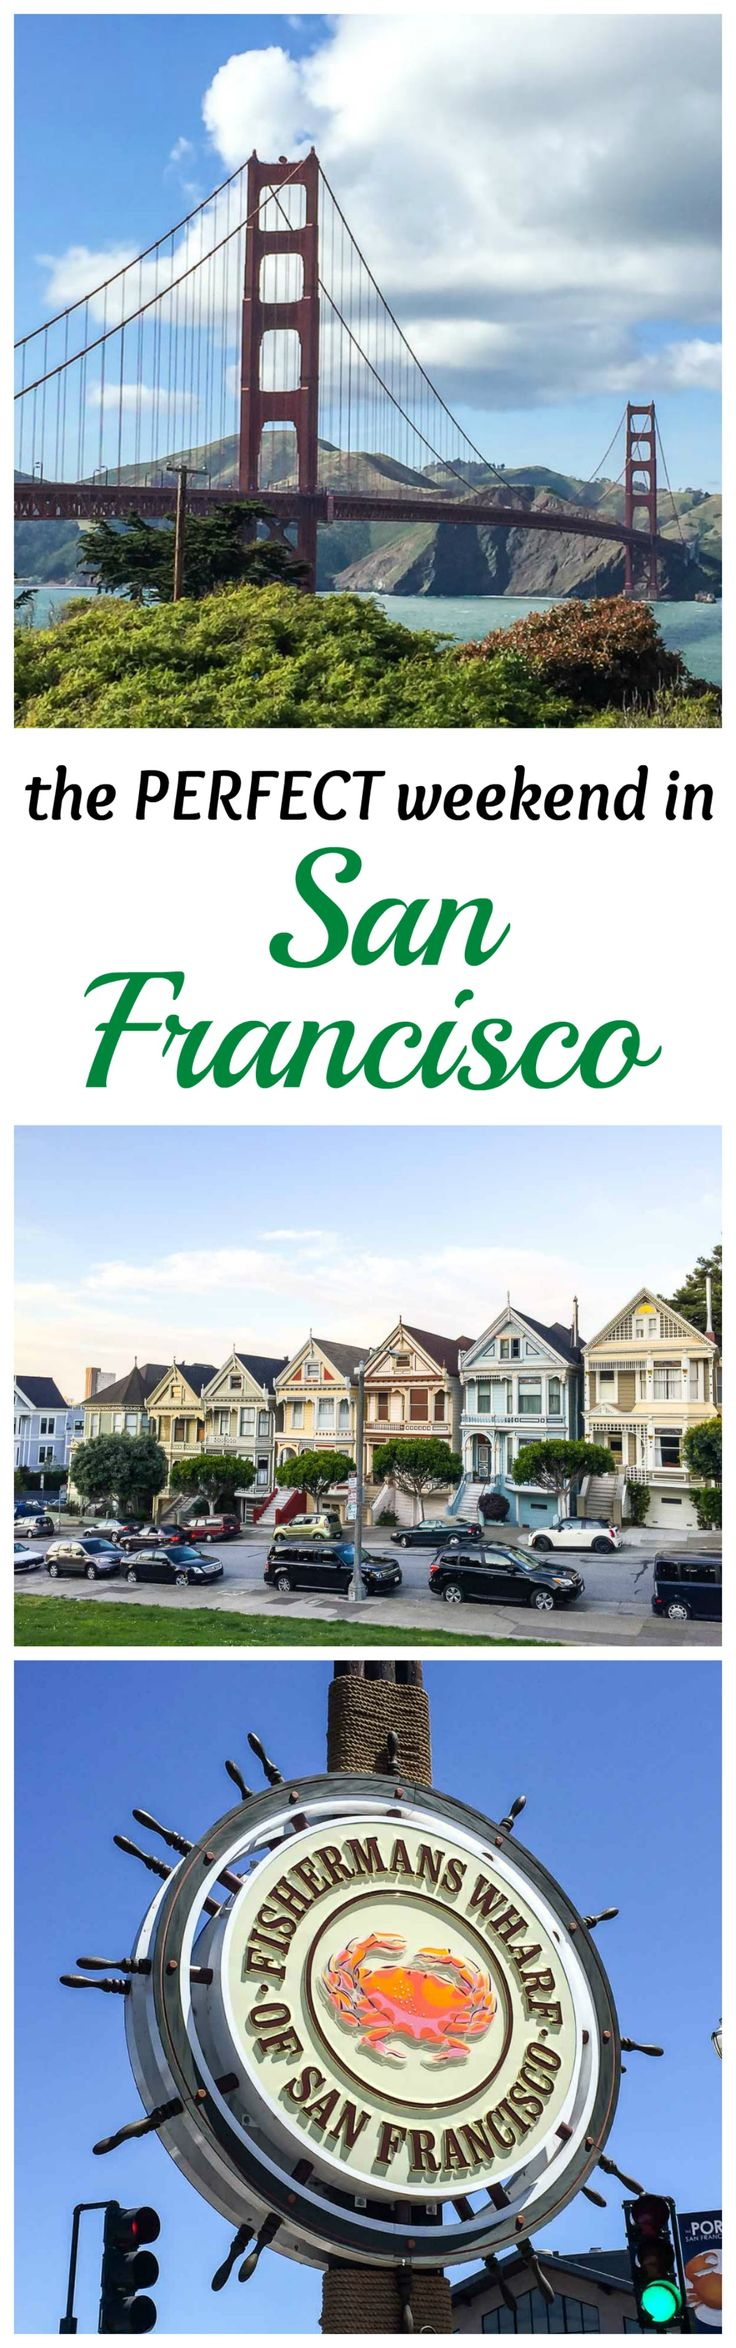 Everything you need to know to plan the PERFECT weekend in San Francisco, including top San Francisco attractions, restaurants, and hotels. Travel guide from www.wellplated.com @wellplated   RePinned by : www.powercouplelife.com